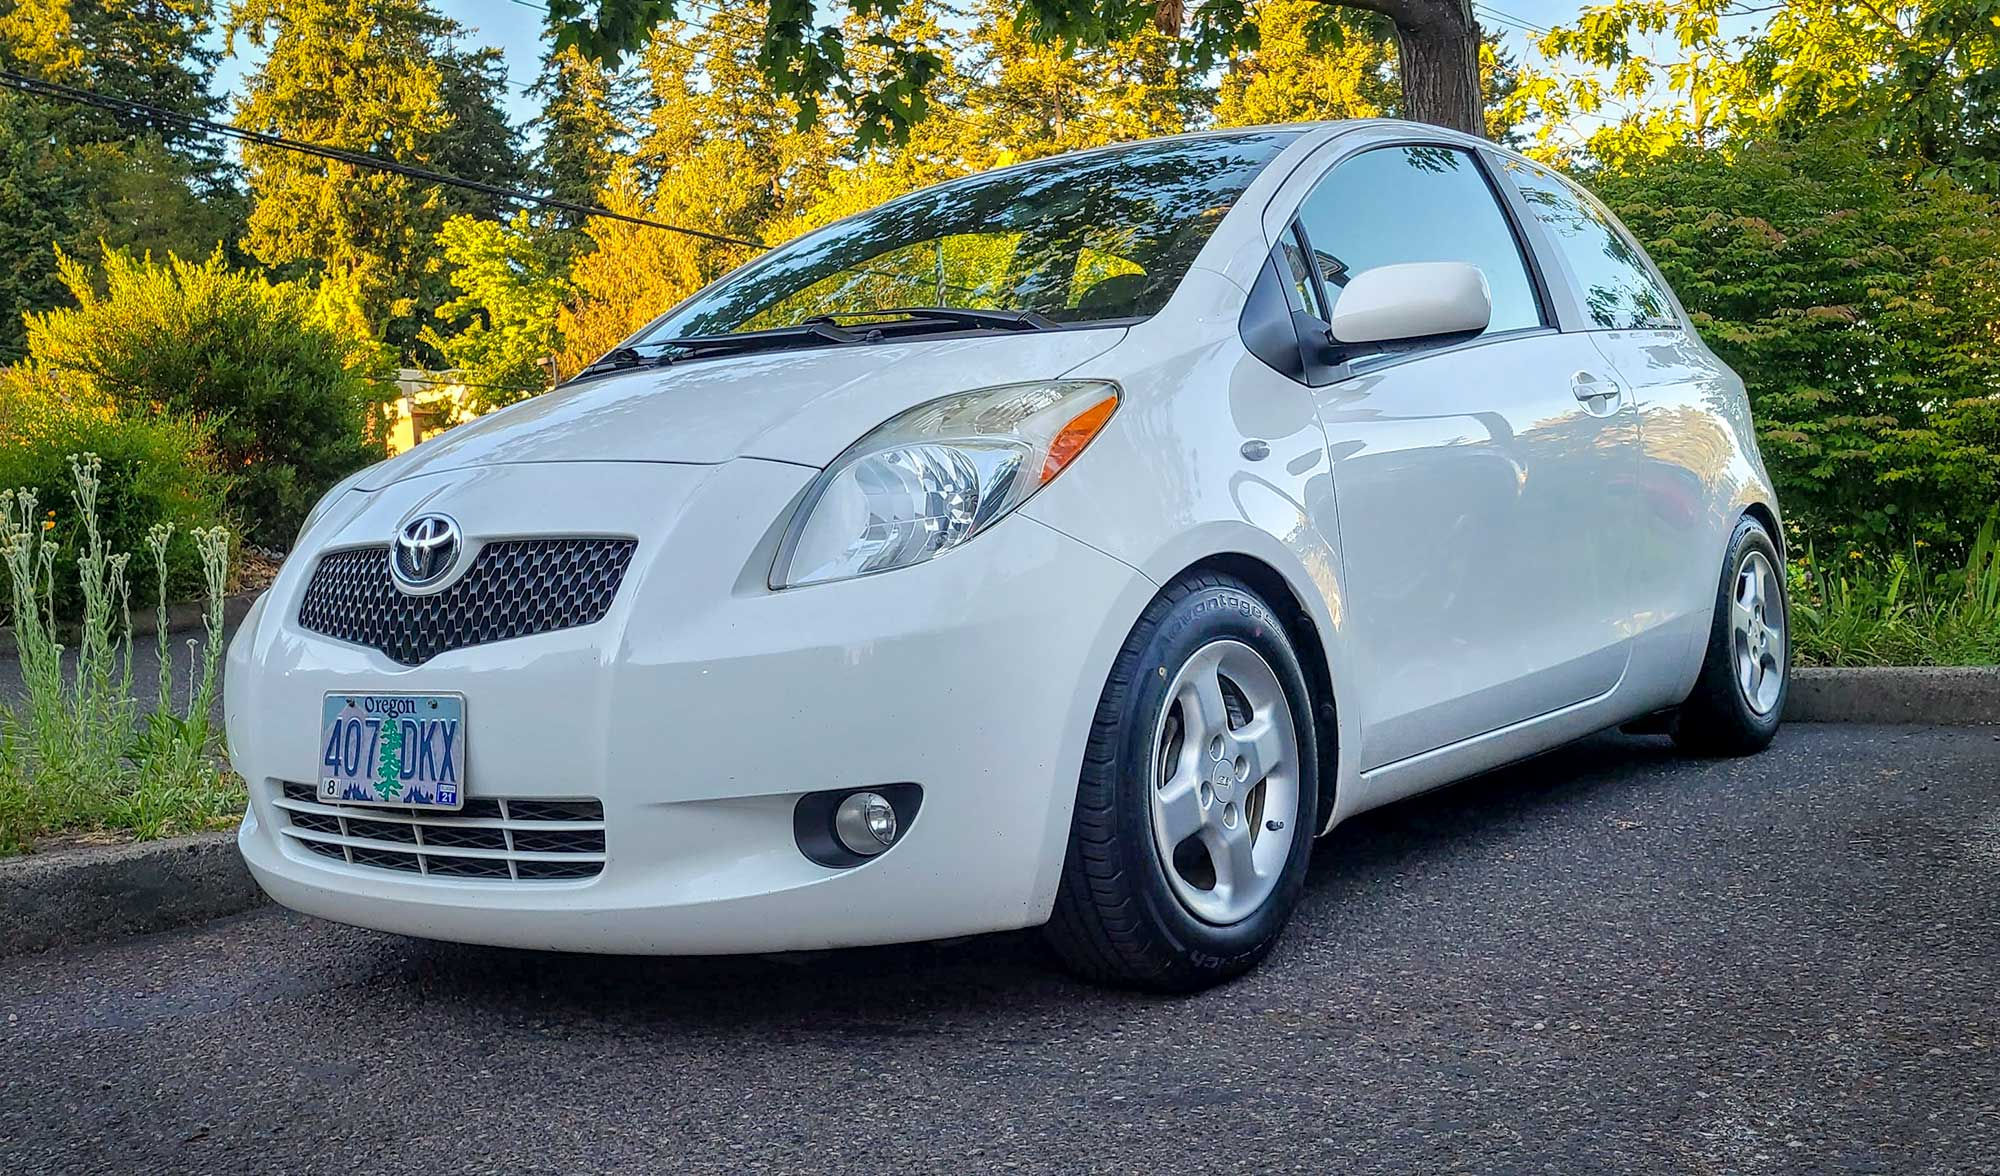 White Toyota Yaris parked with BFGoodrich Advantage Control tires